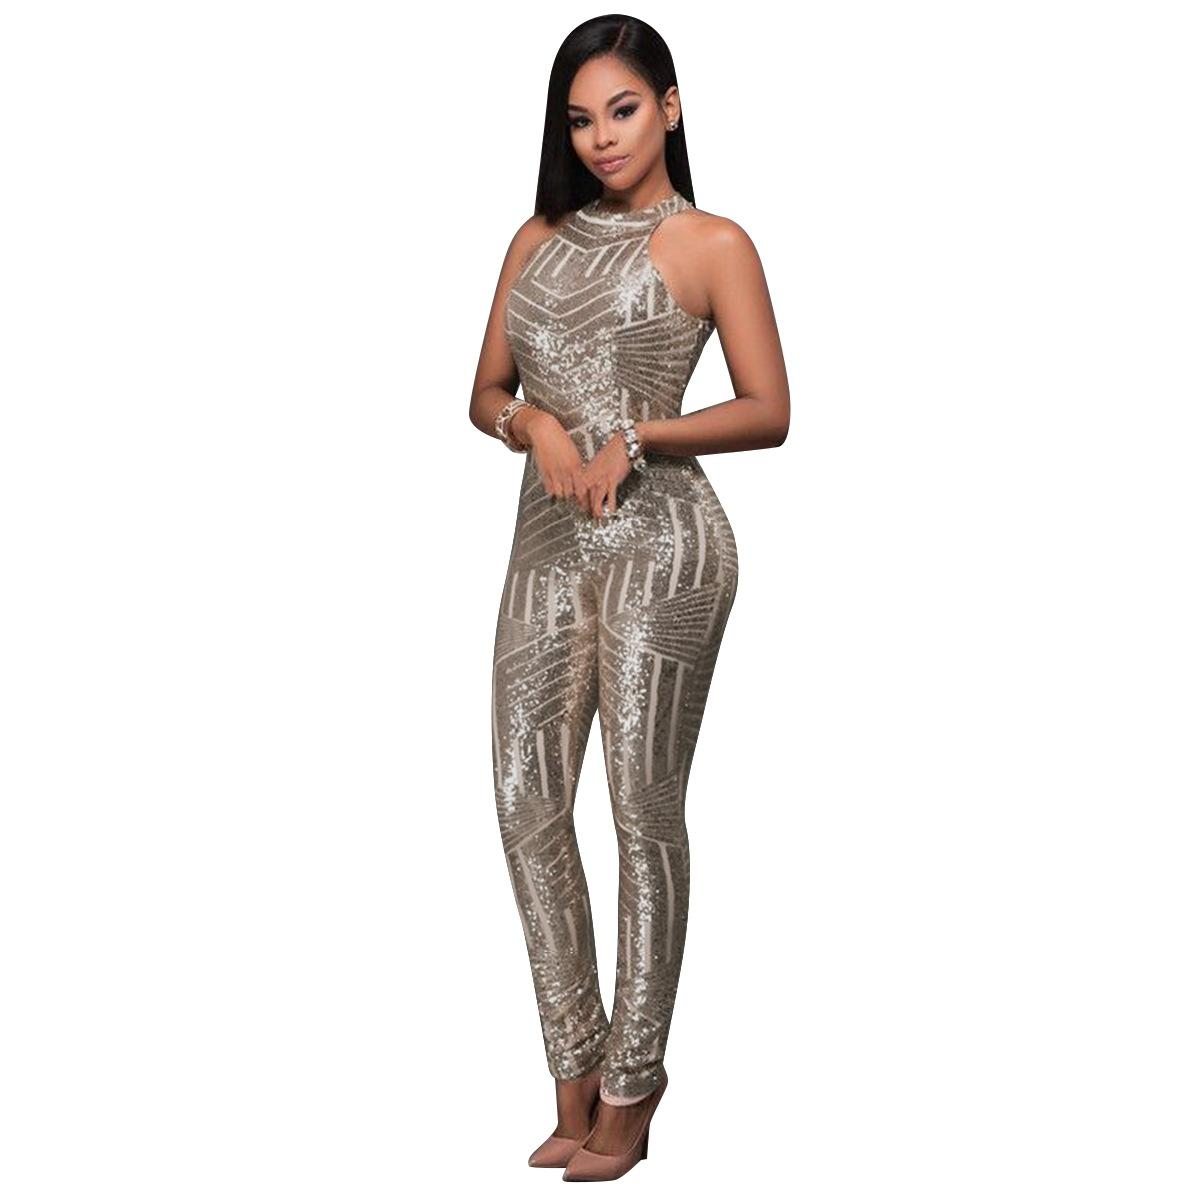 b5be06e49e0e 2019 Sequin Jumpsuits High End Custom Gold Rompers Women Sparkly Jumpsuit  One Piece Fall Womens Long Sleeve High Stretch Party Club From Priscille